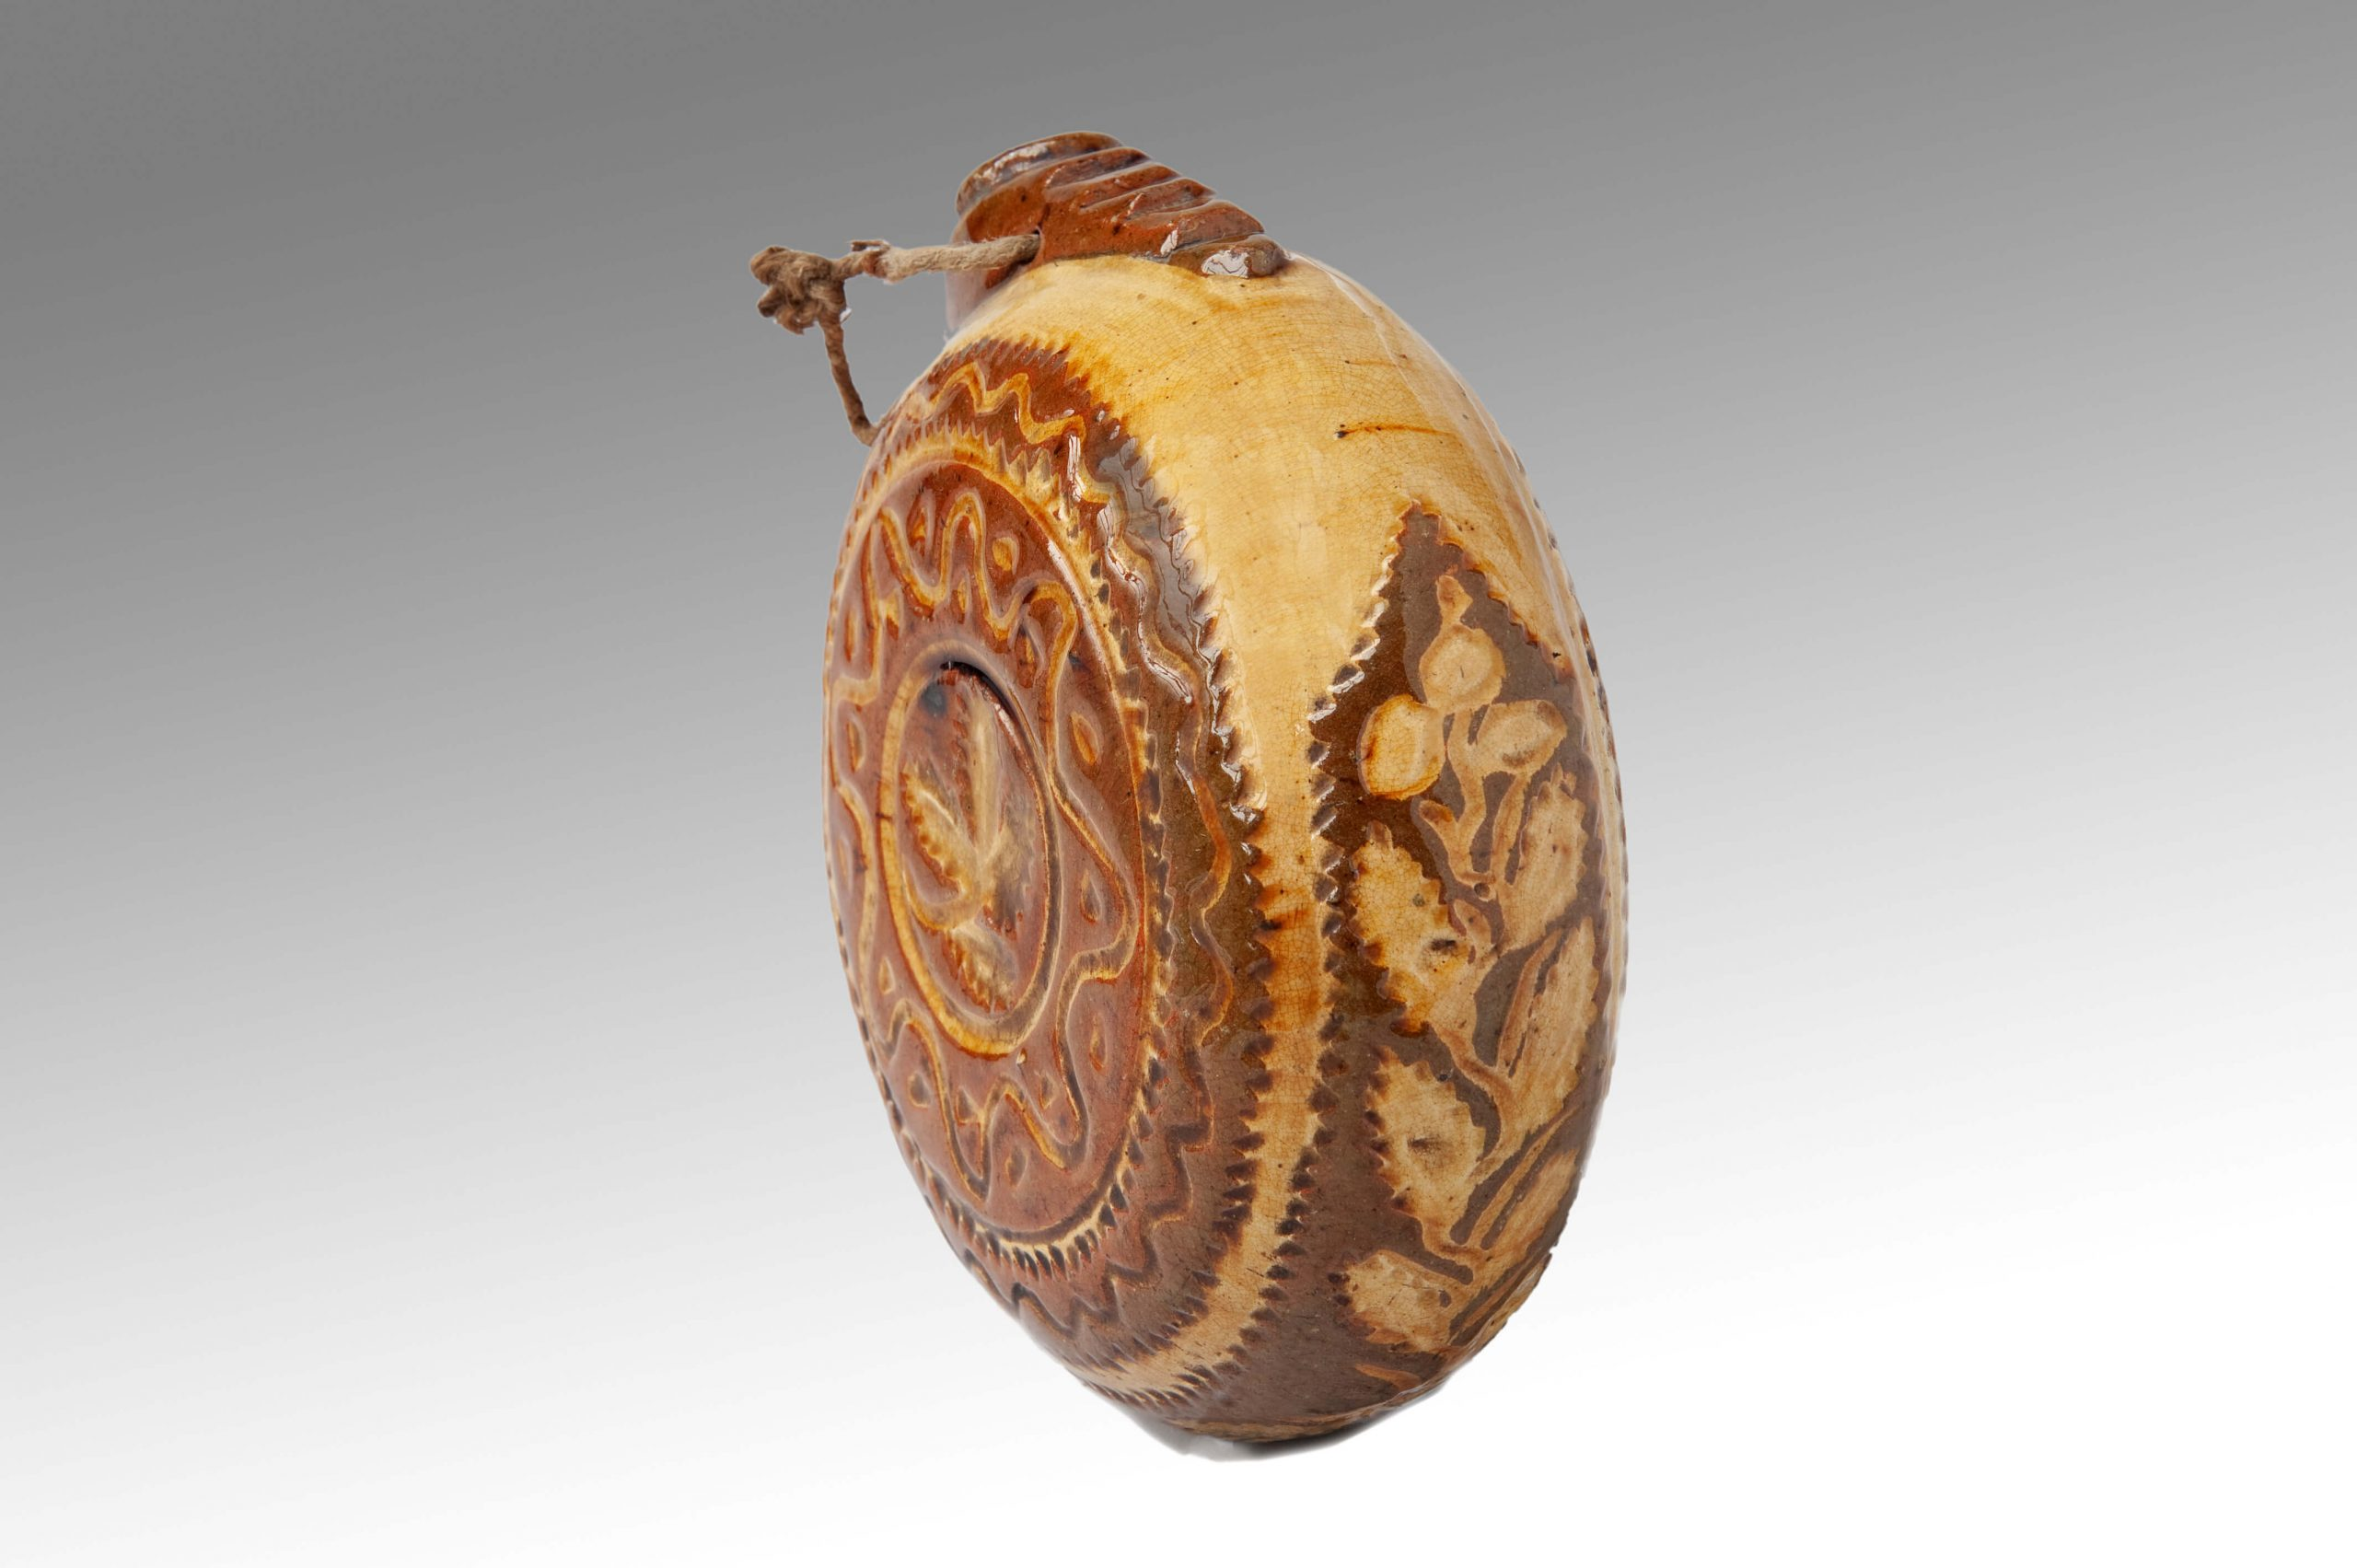 Image of Sussex Pottery <br>A Very Rare 18th Century Sussex Pilgrim Flask from Chailey